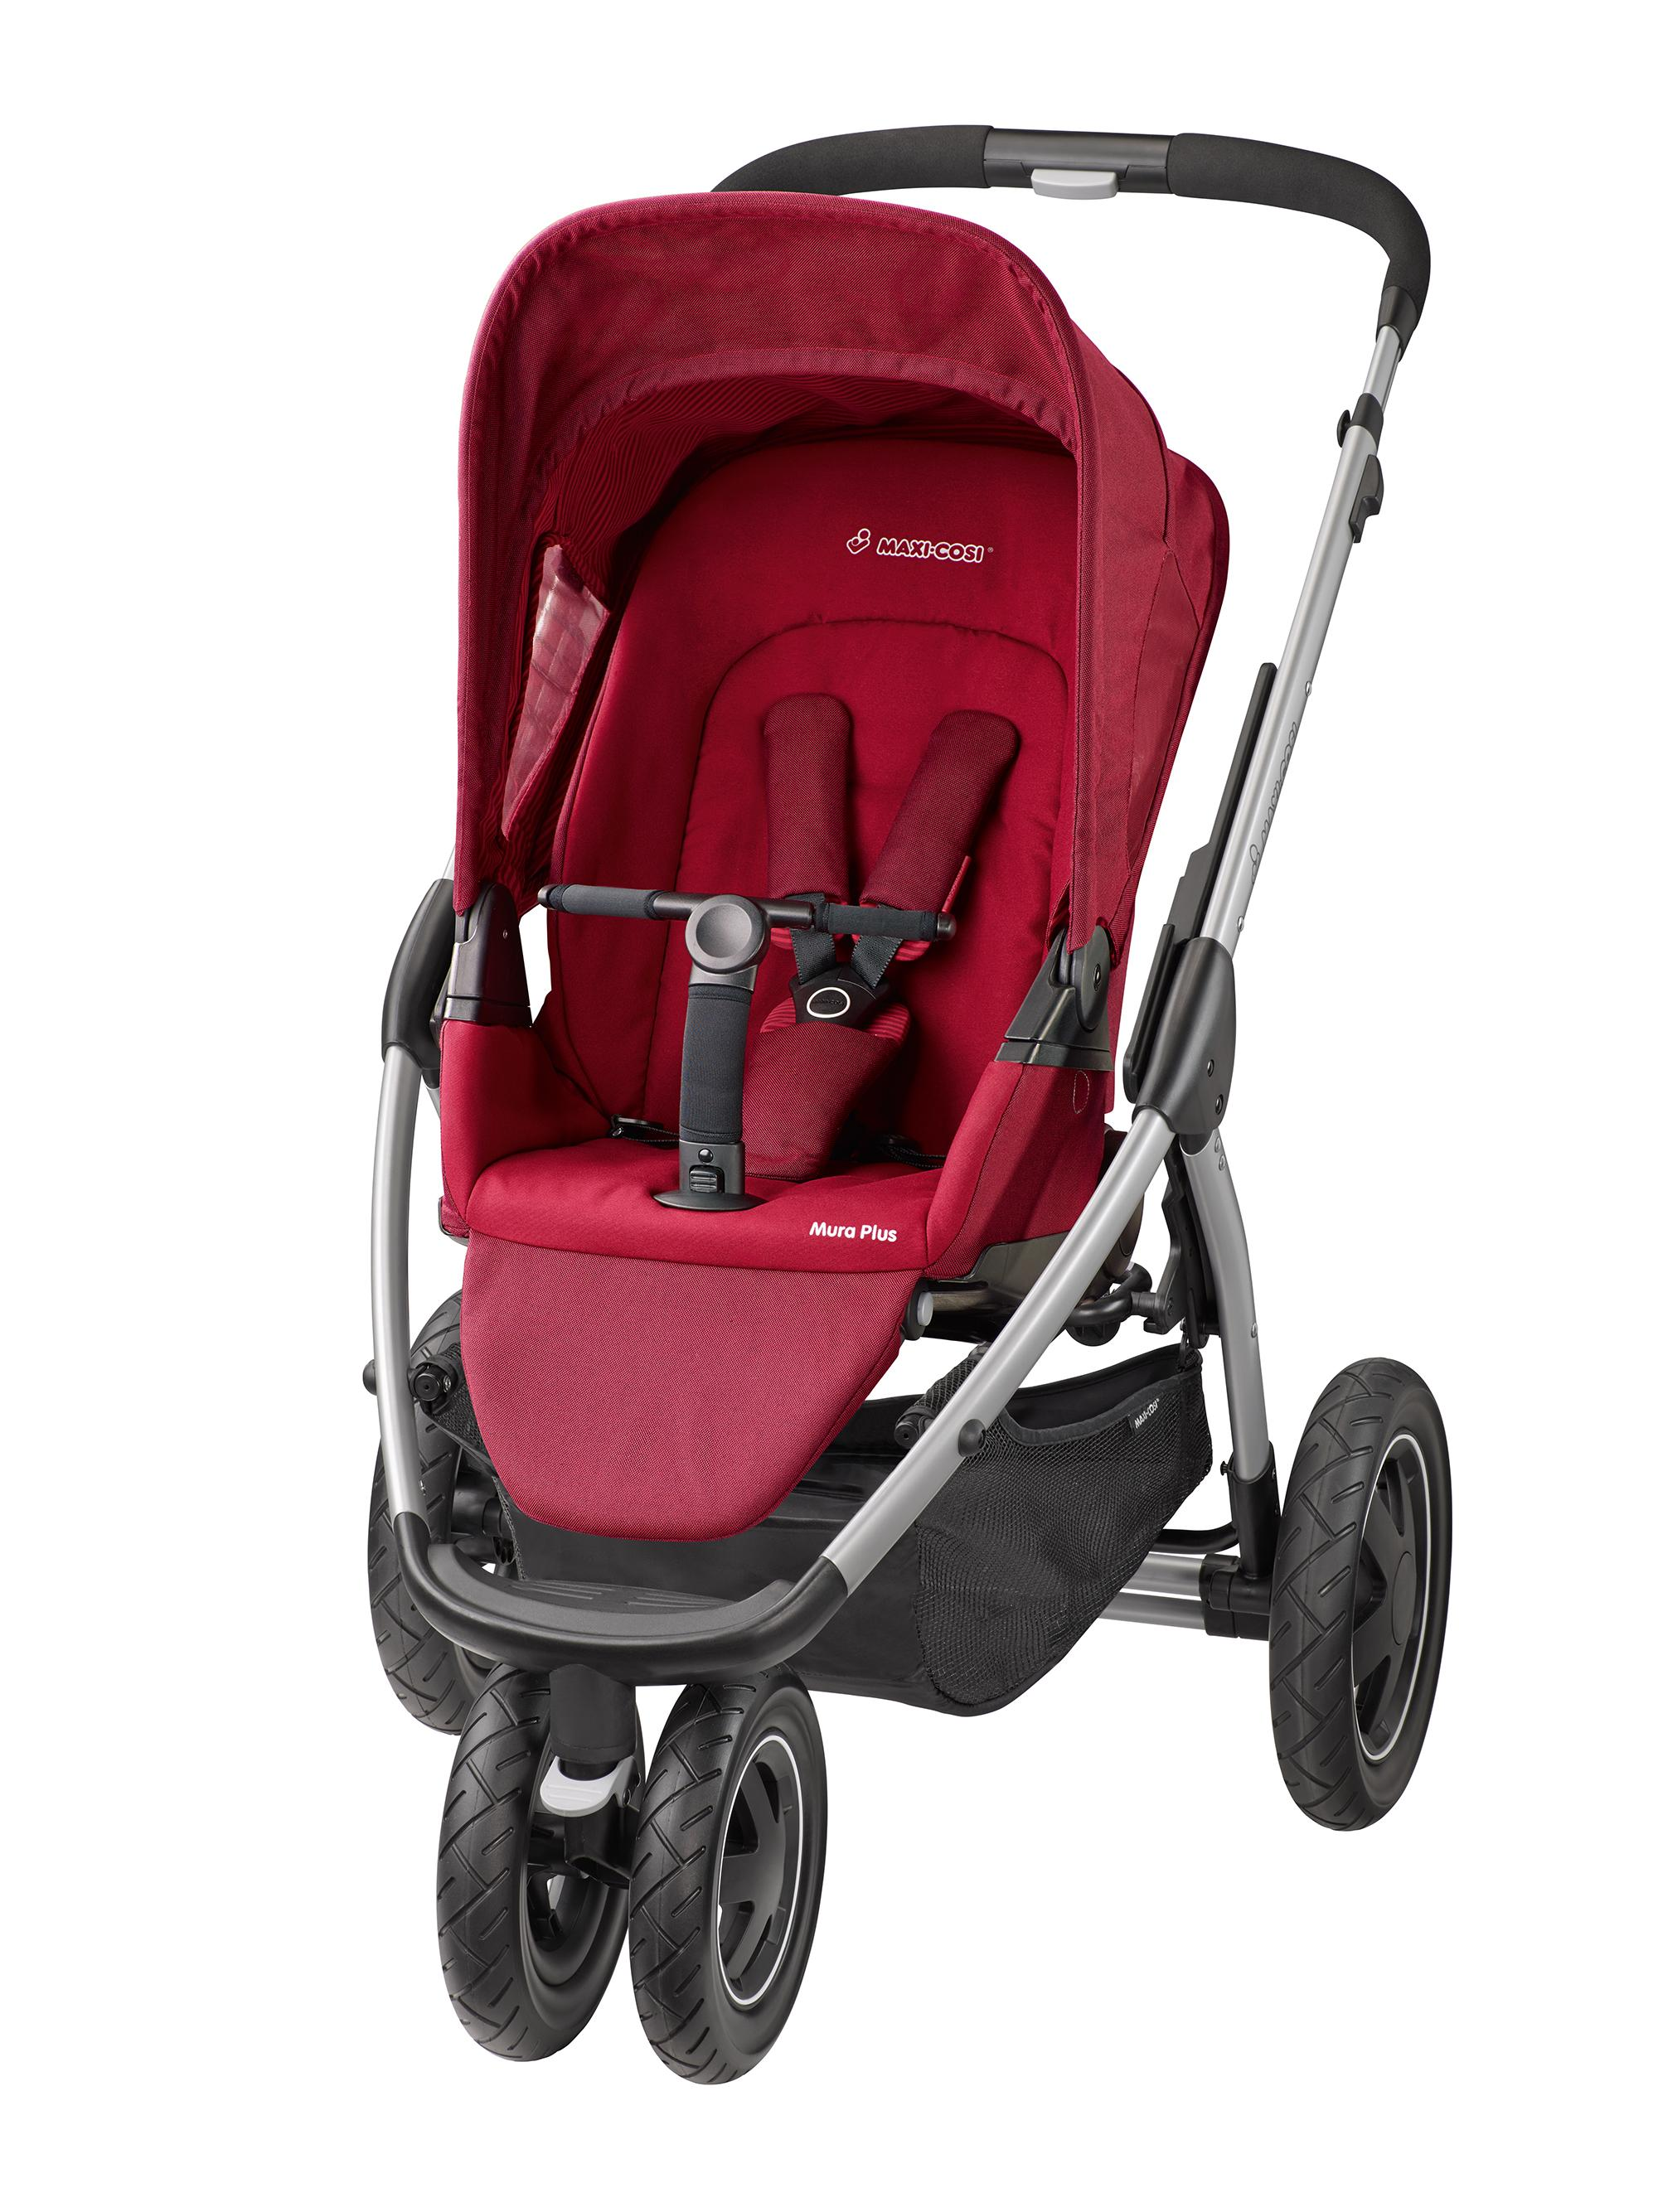 maxi cosi mura plus pushchair robin red baby. Black Bedroom Furniture Sets. Home Design Ideas